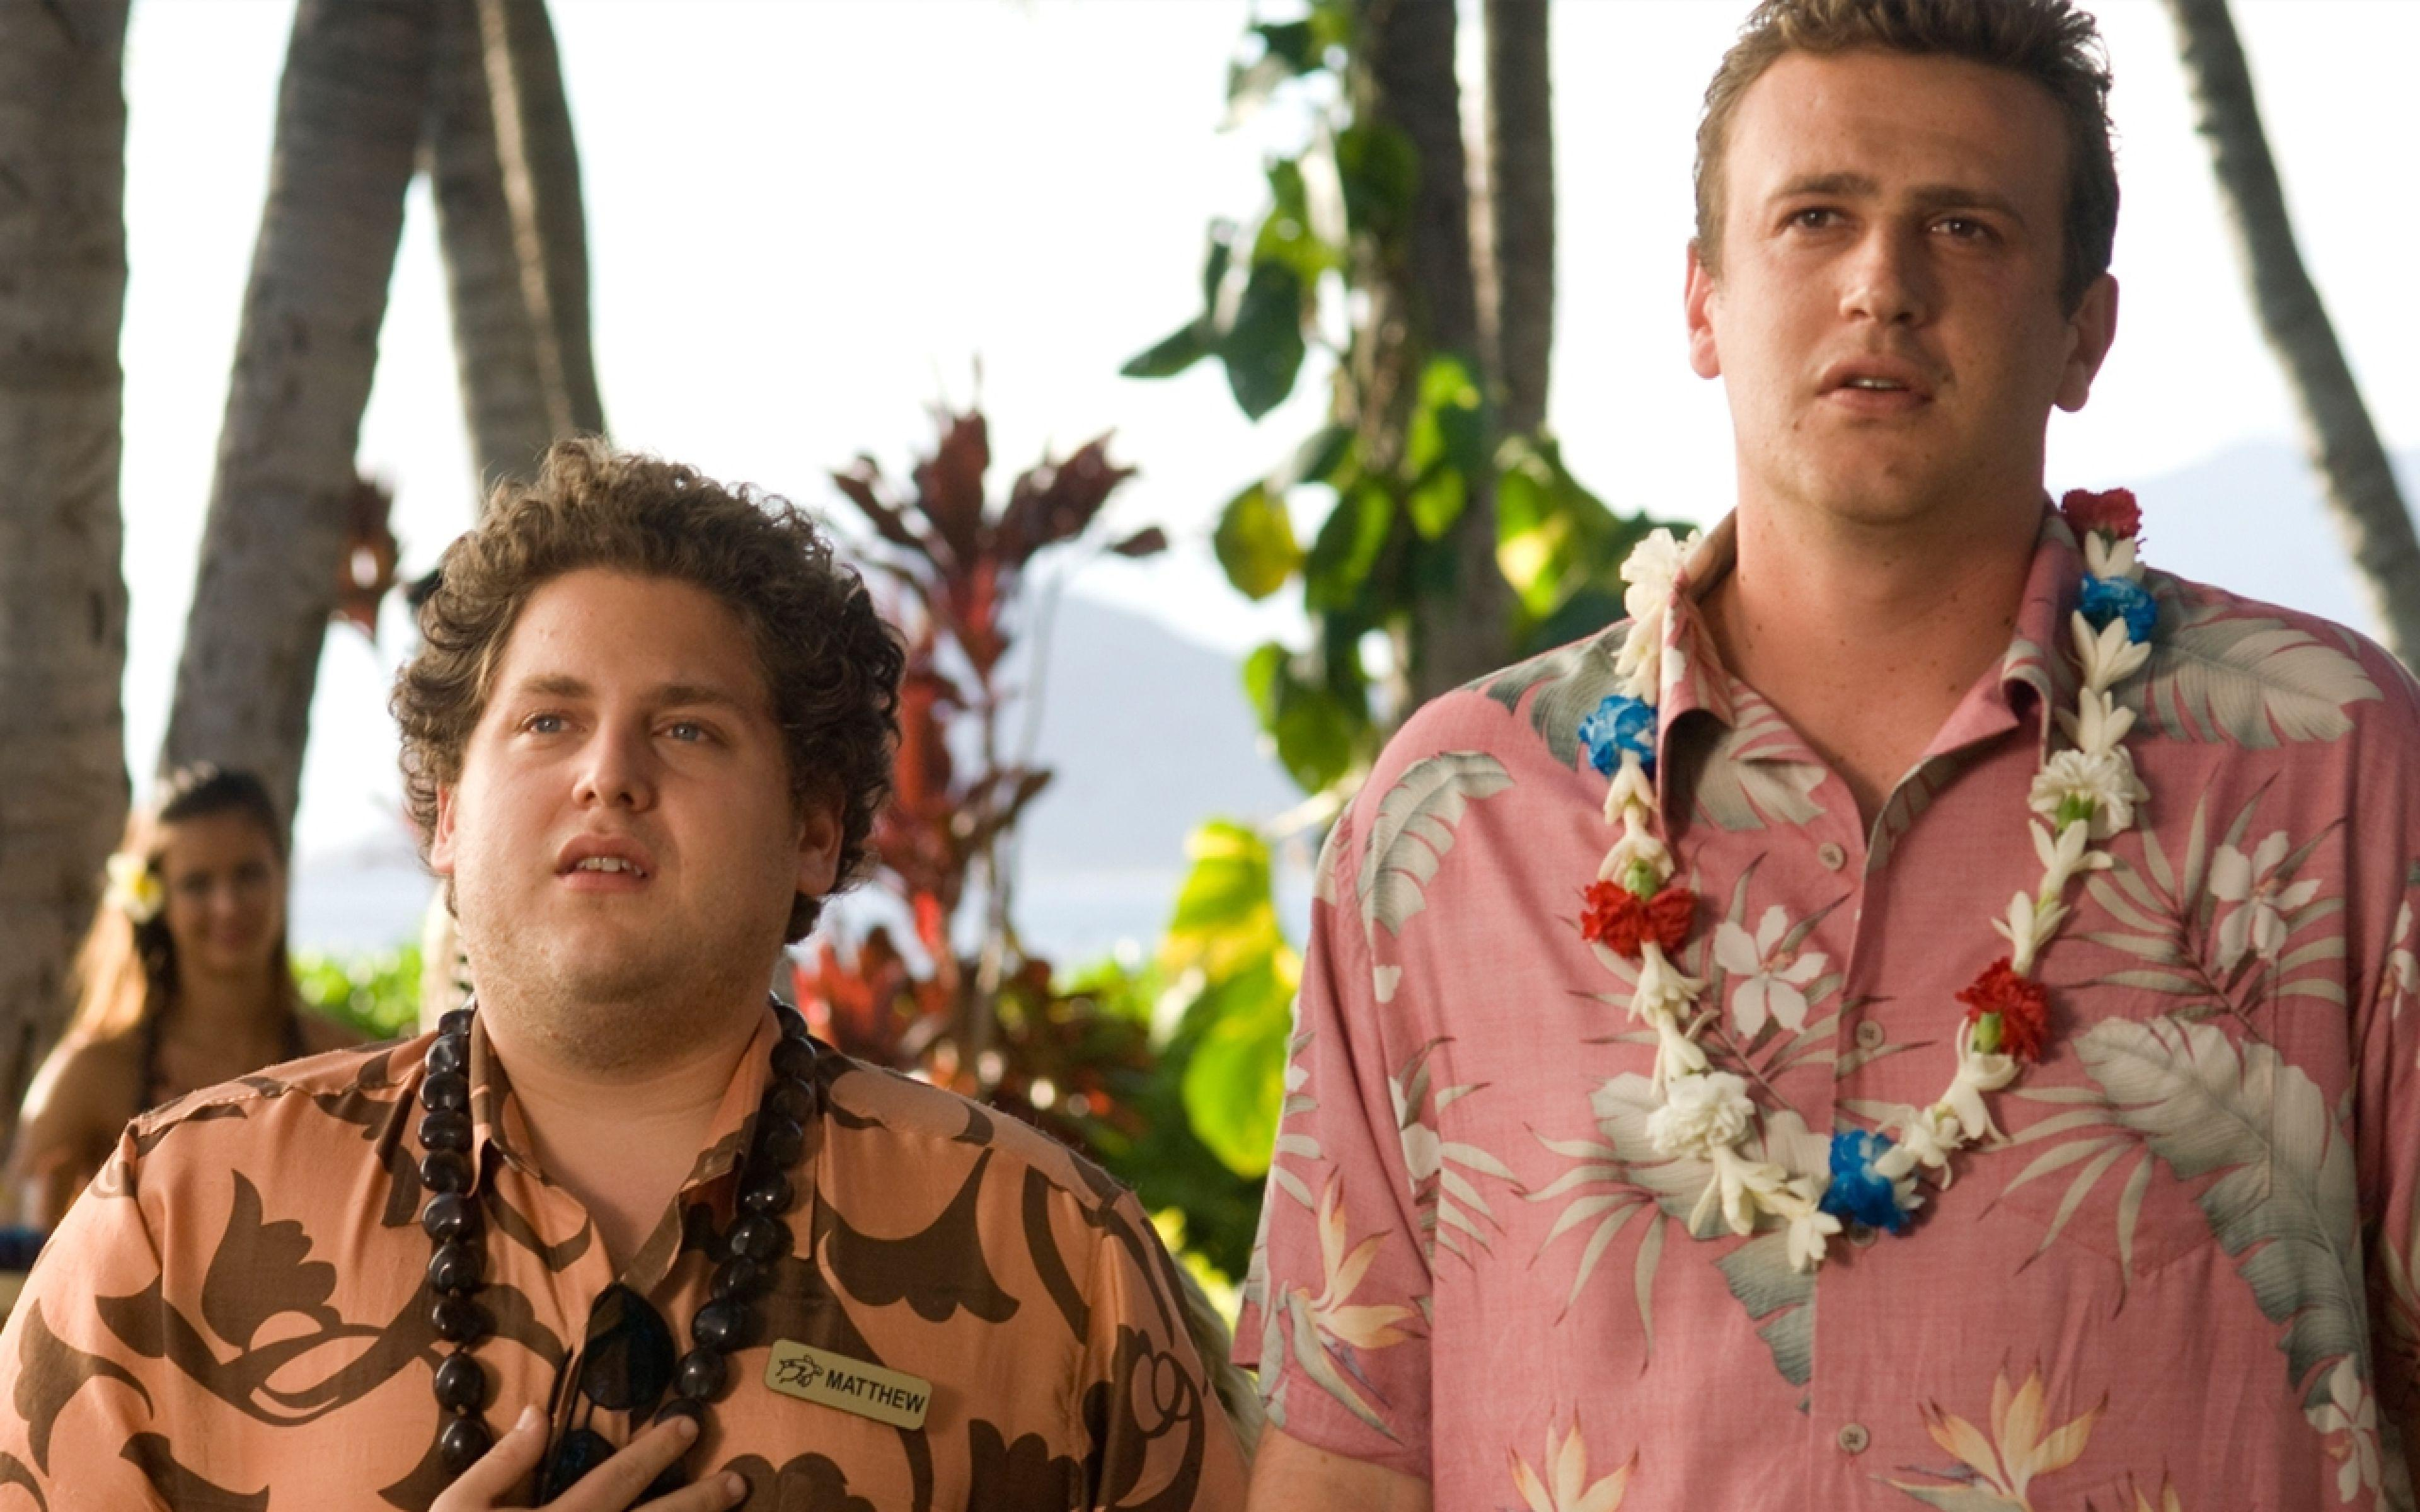 Download Wallpaper 3840x2400 Forgetting sarah marshall, Jason ...